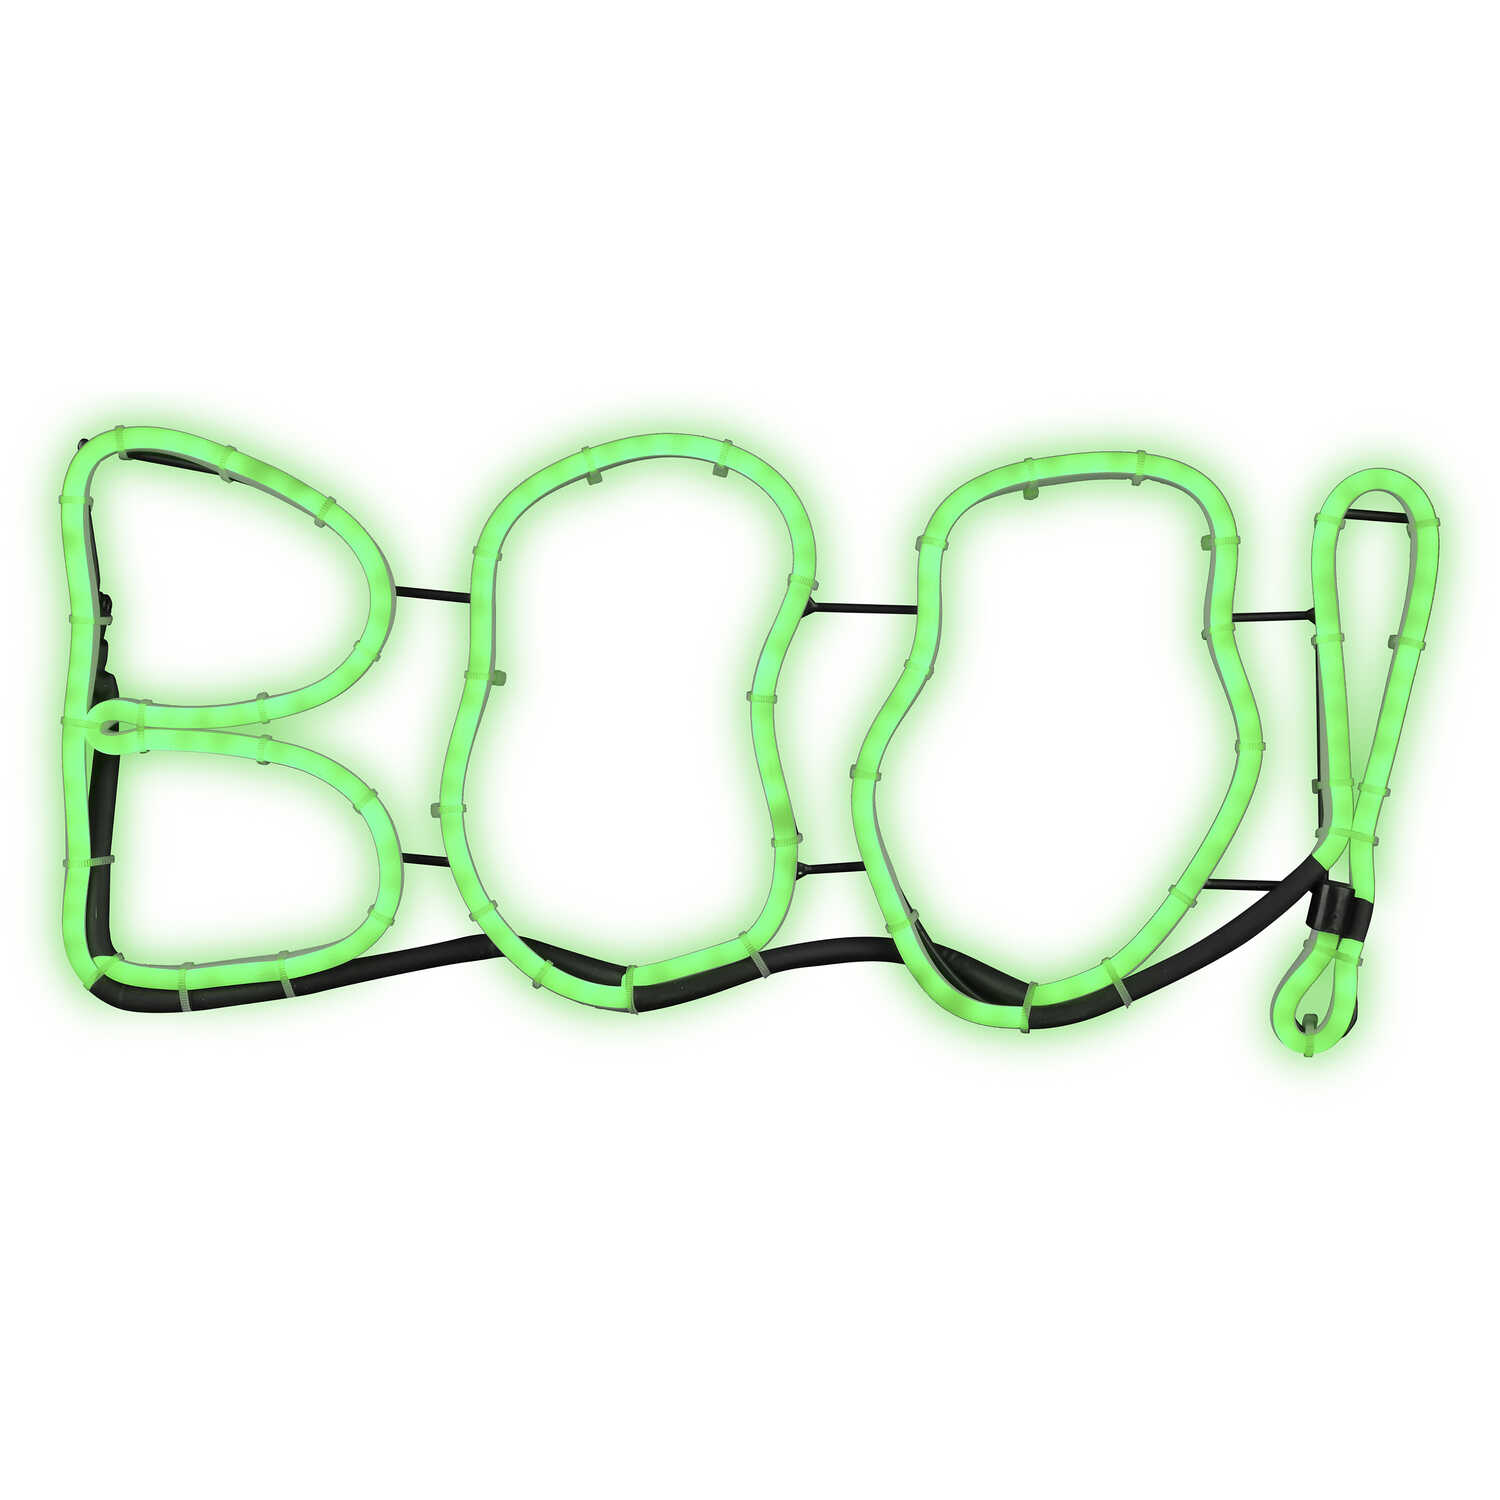 Gemmy  Light Glo  Short Circuit Boo Sign  Halloween Decoration  9-7/16 in. H x 13-9/16 in. W x 17-3/